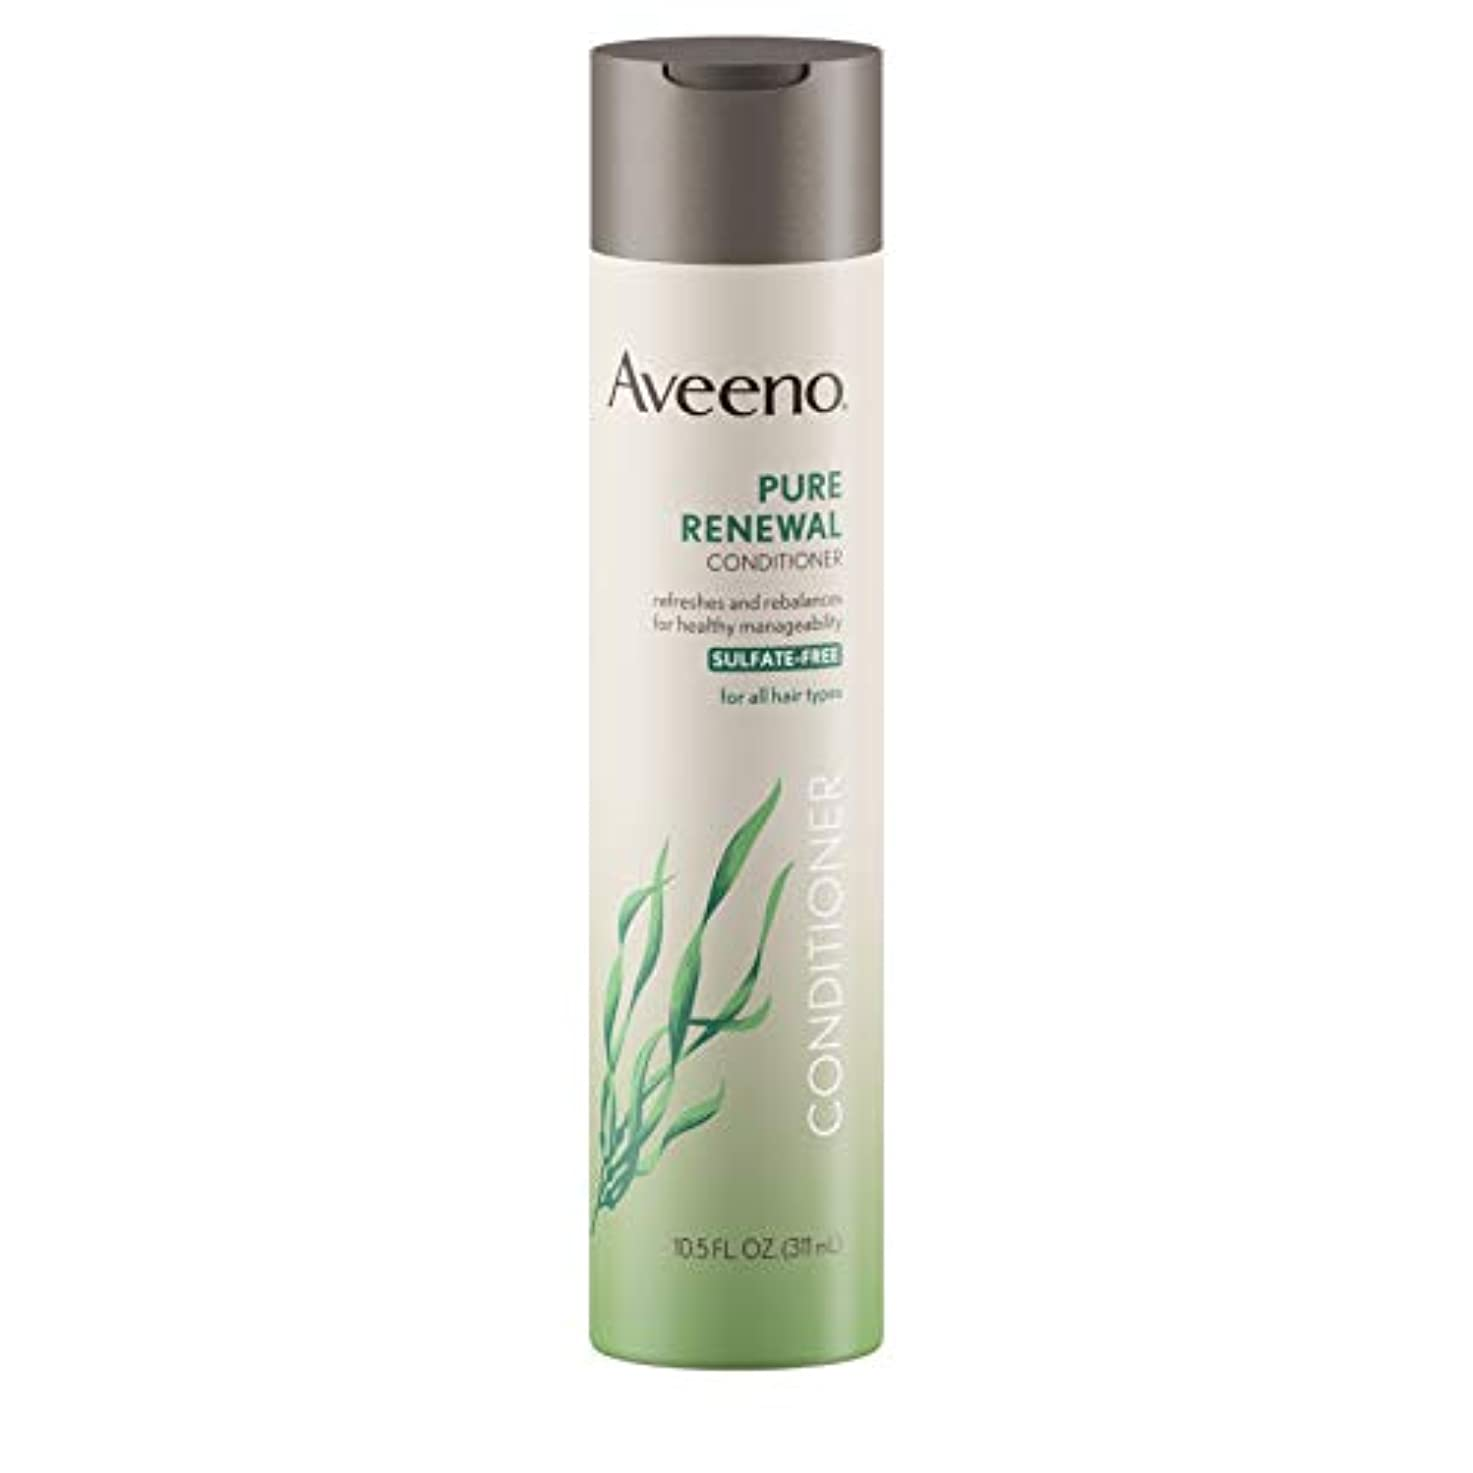 Aveeno Pure Renewal Conditioner 310 ml (Sulfate-Free) (並行輸入品)